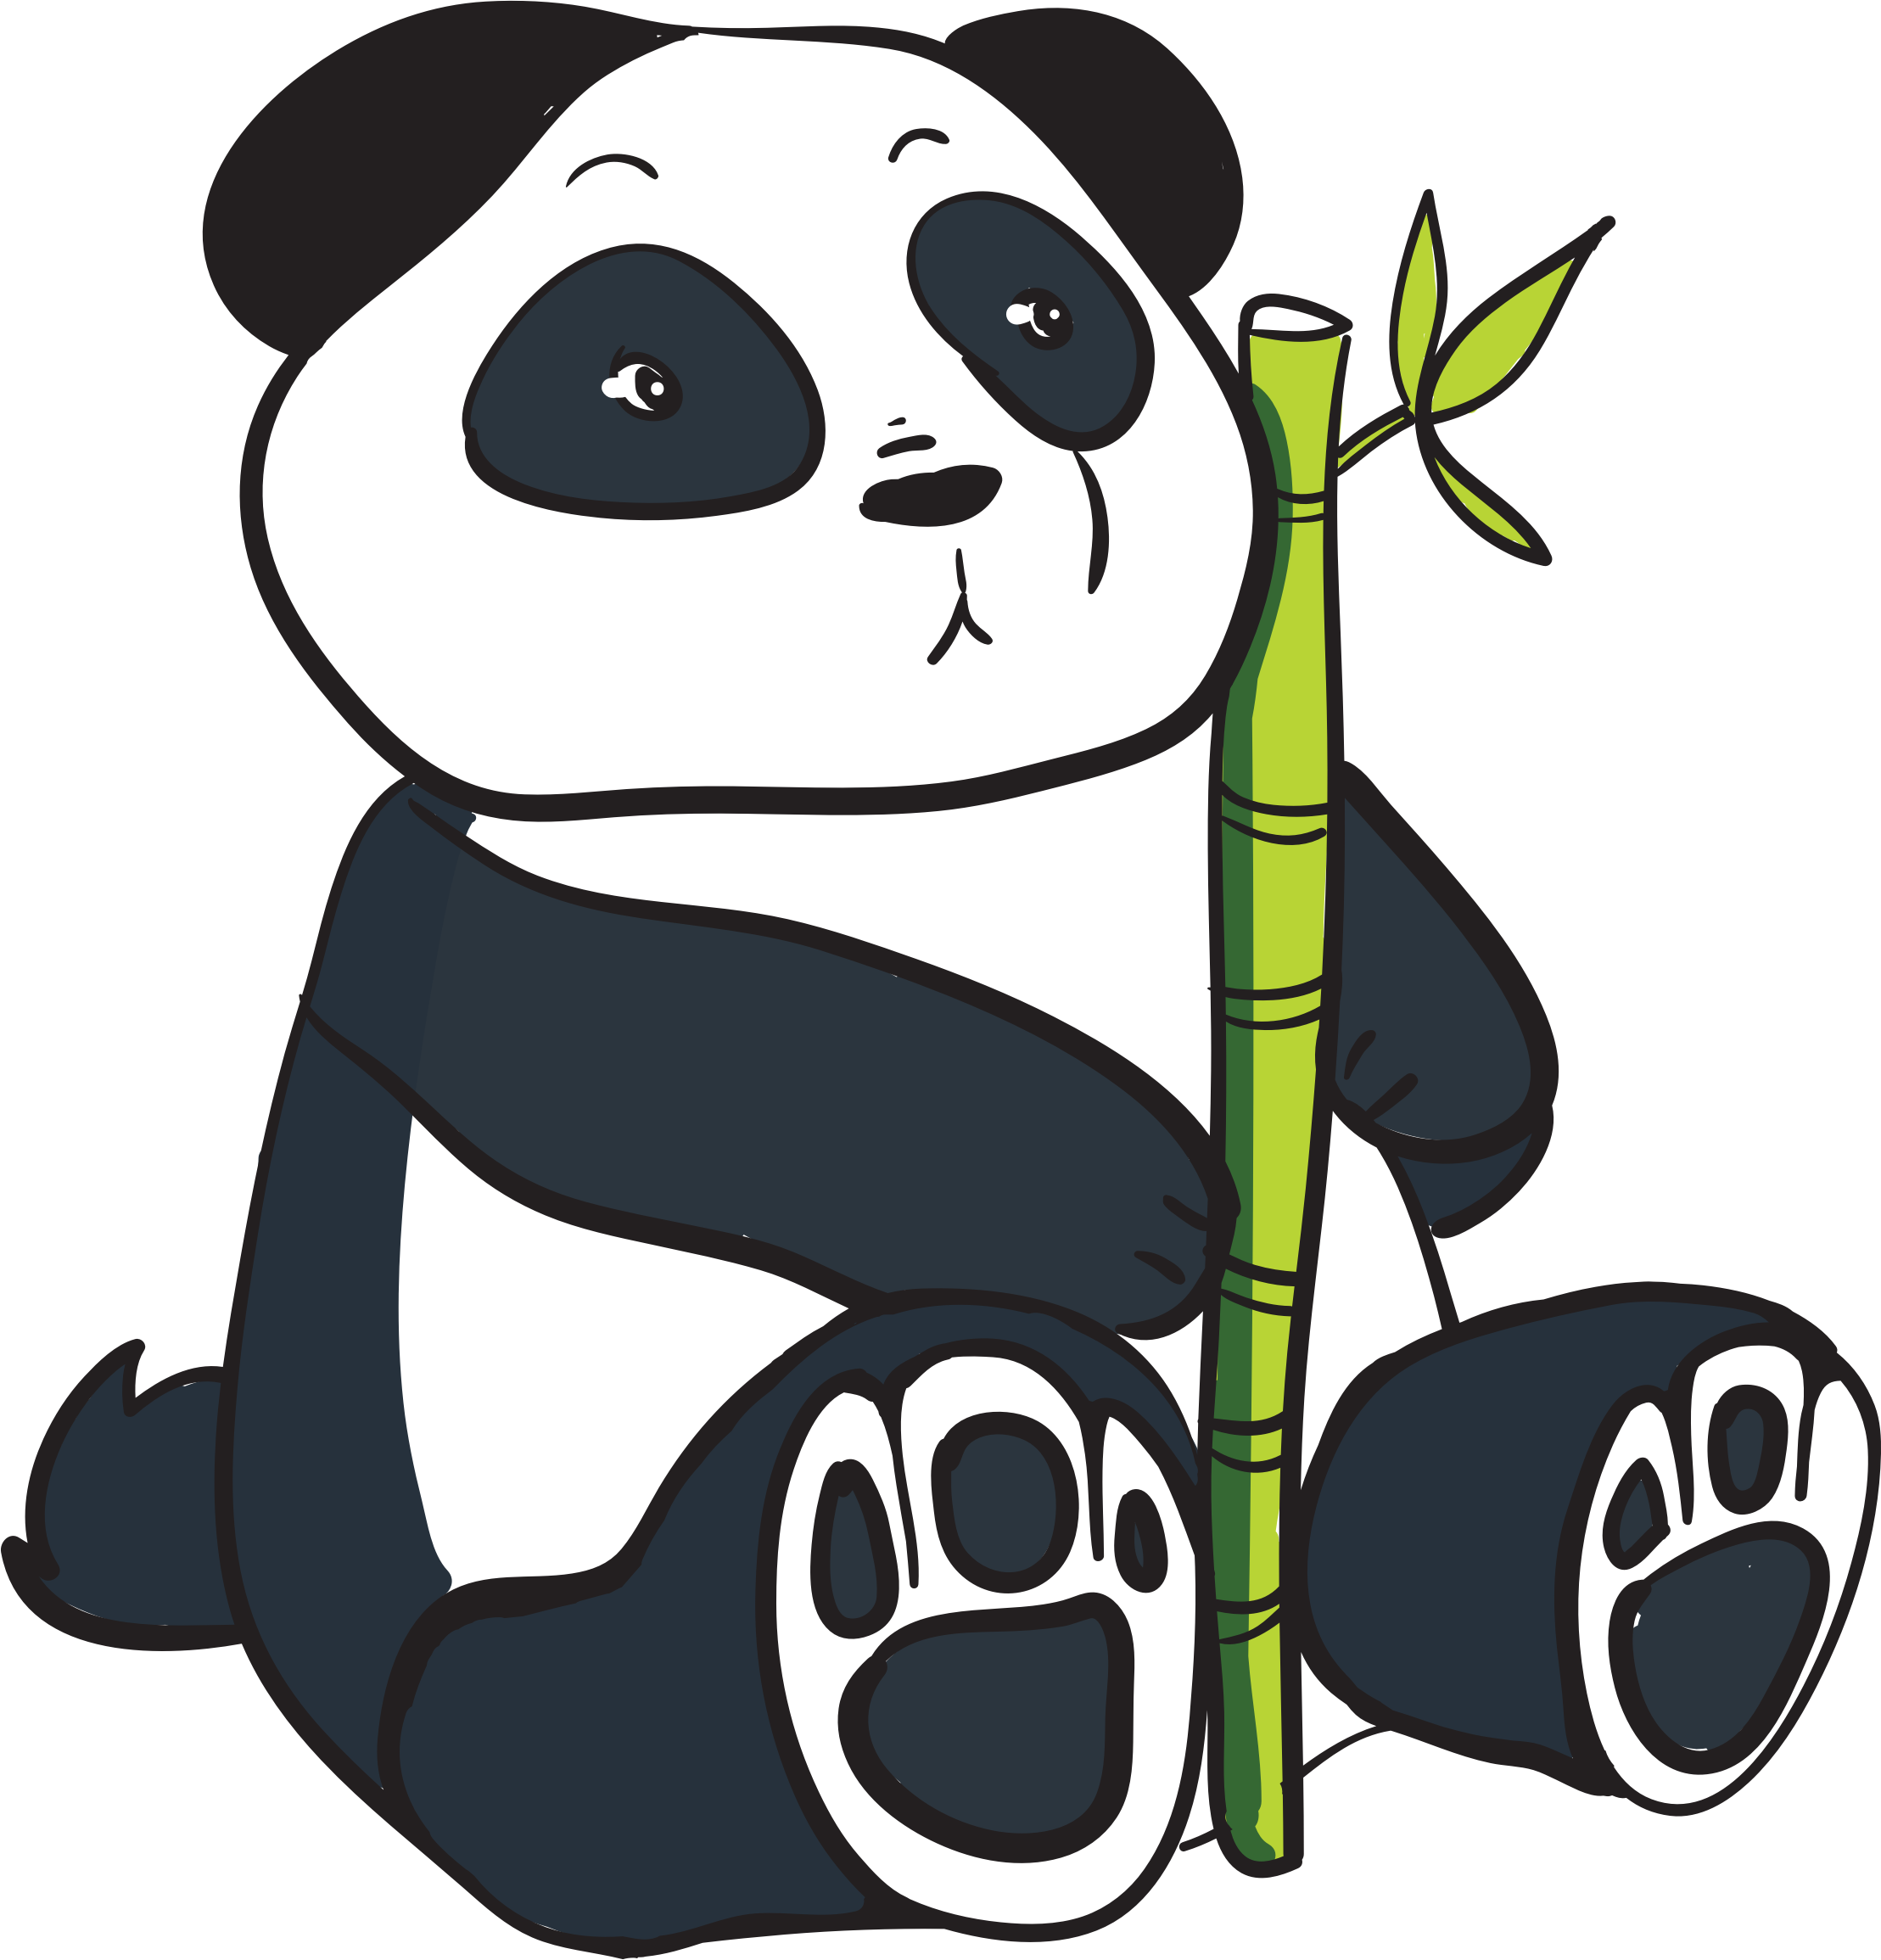 With bamboo stalk icons. C clipart panda